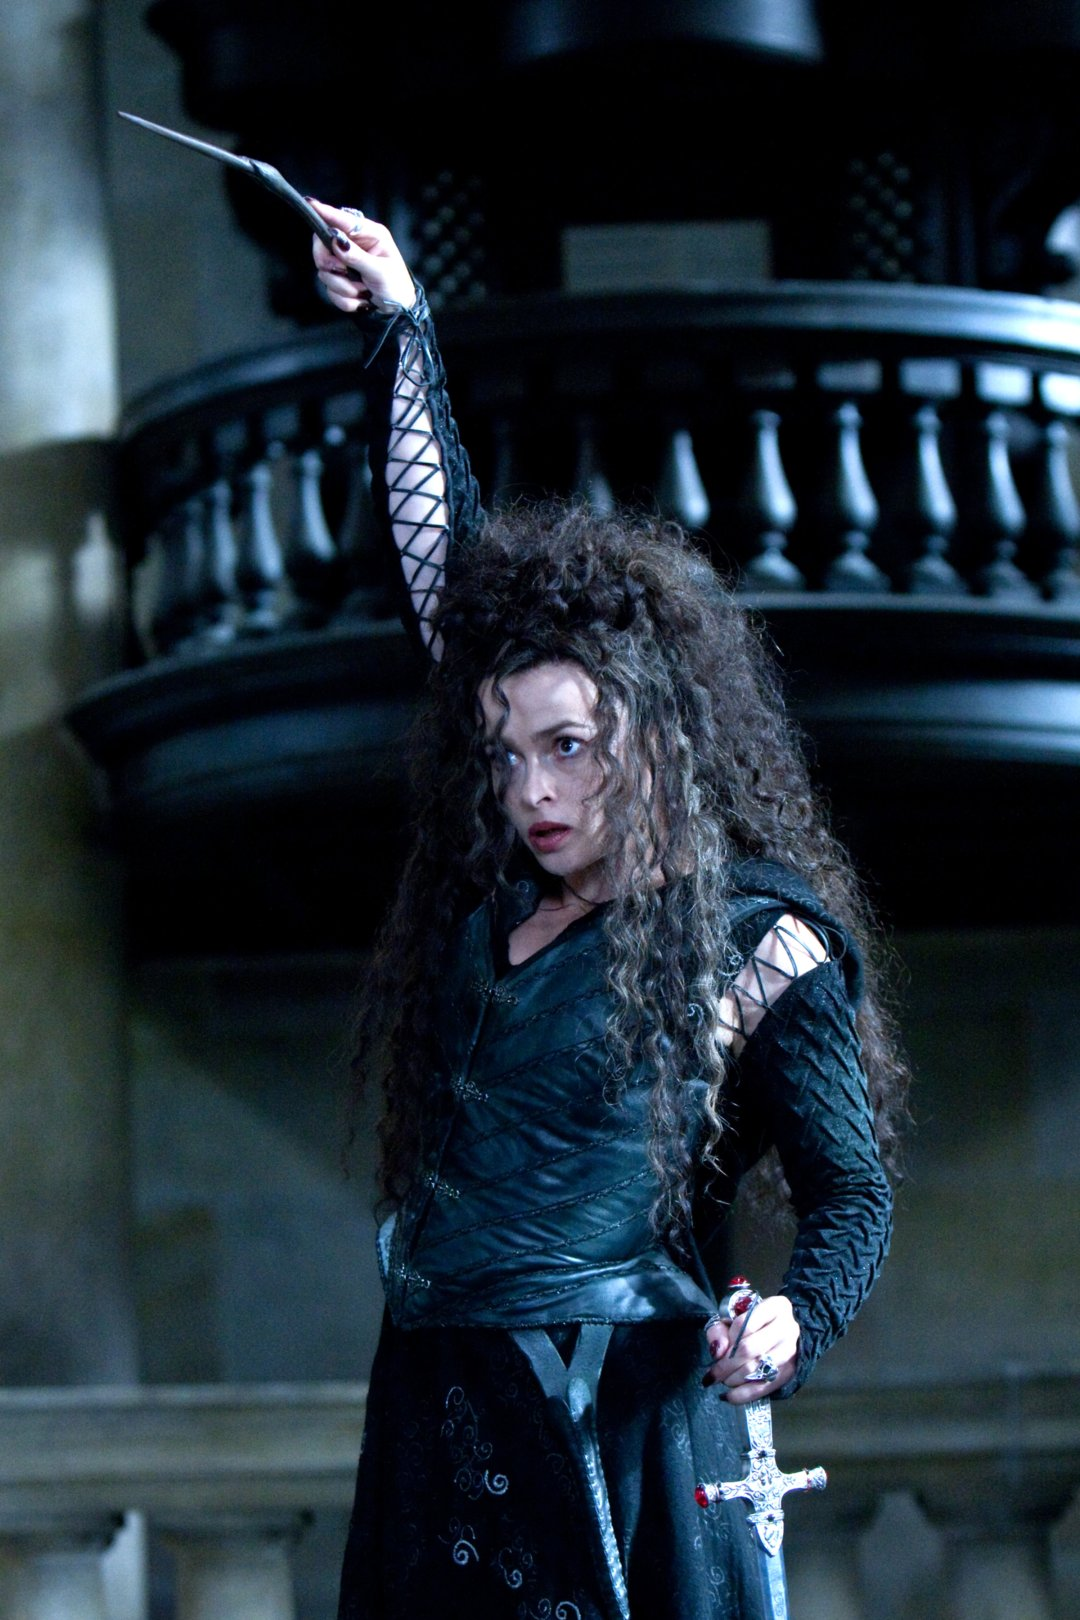 Bellatrix casting a spell and holding the Sowrd of Gryffindor